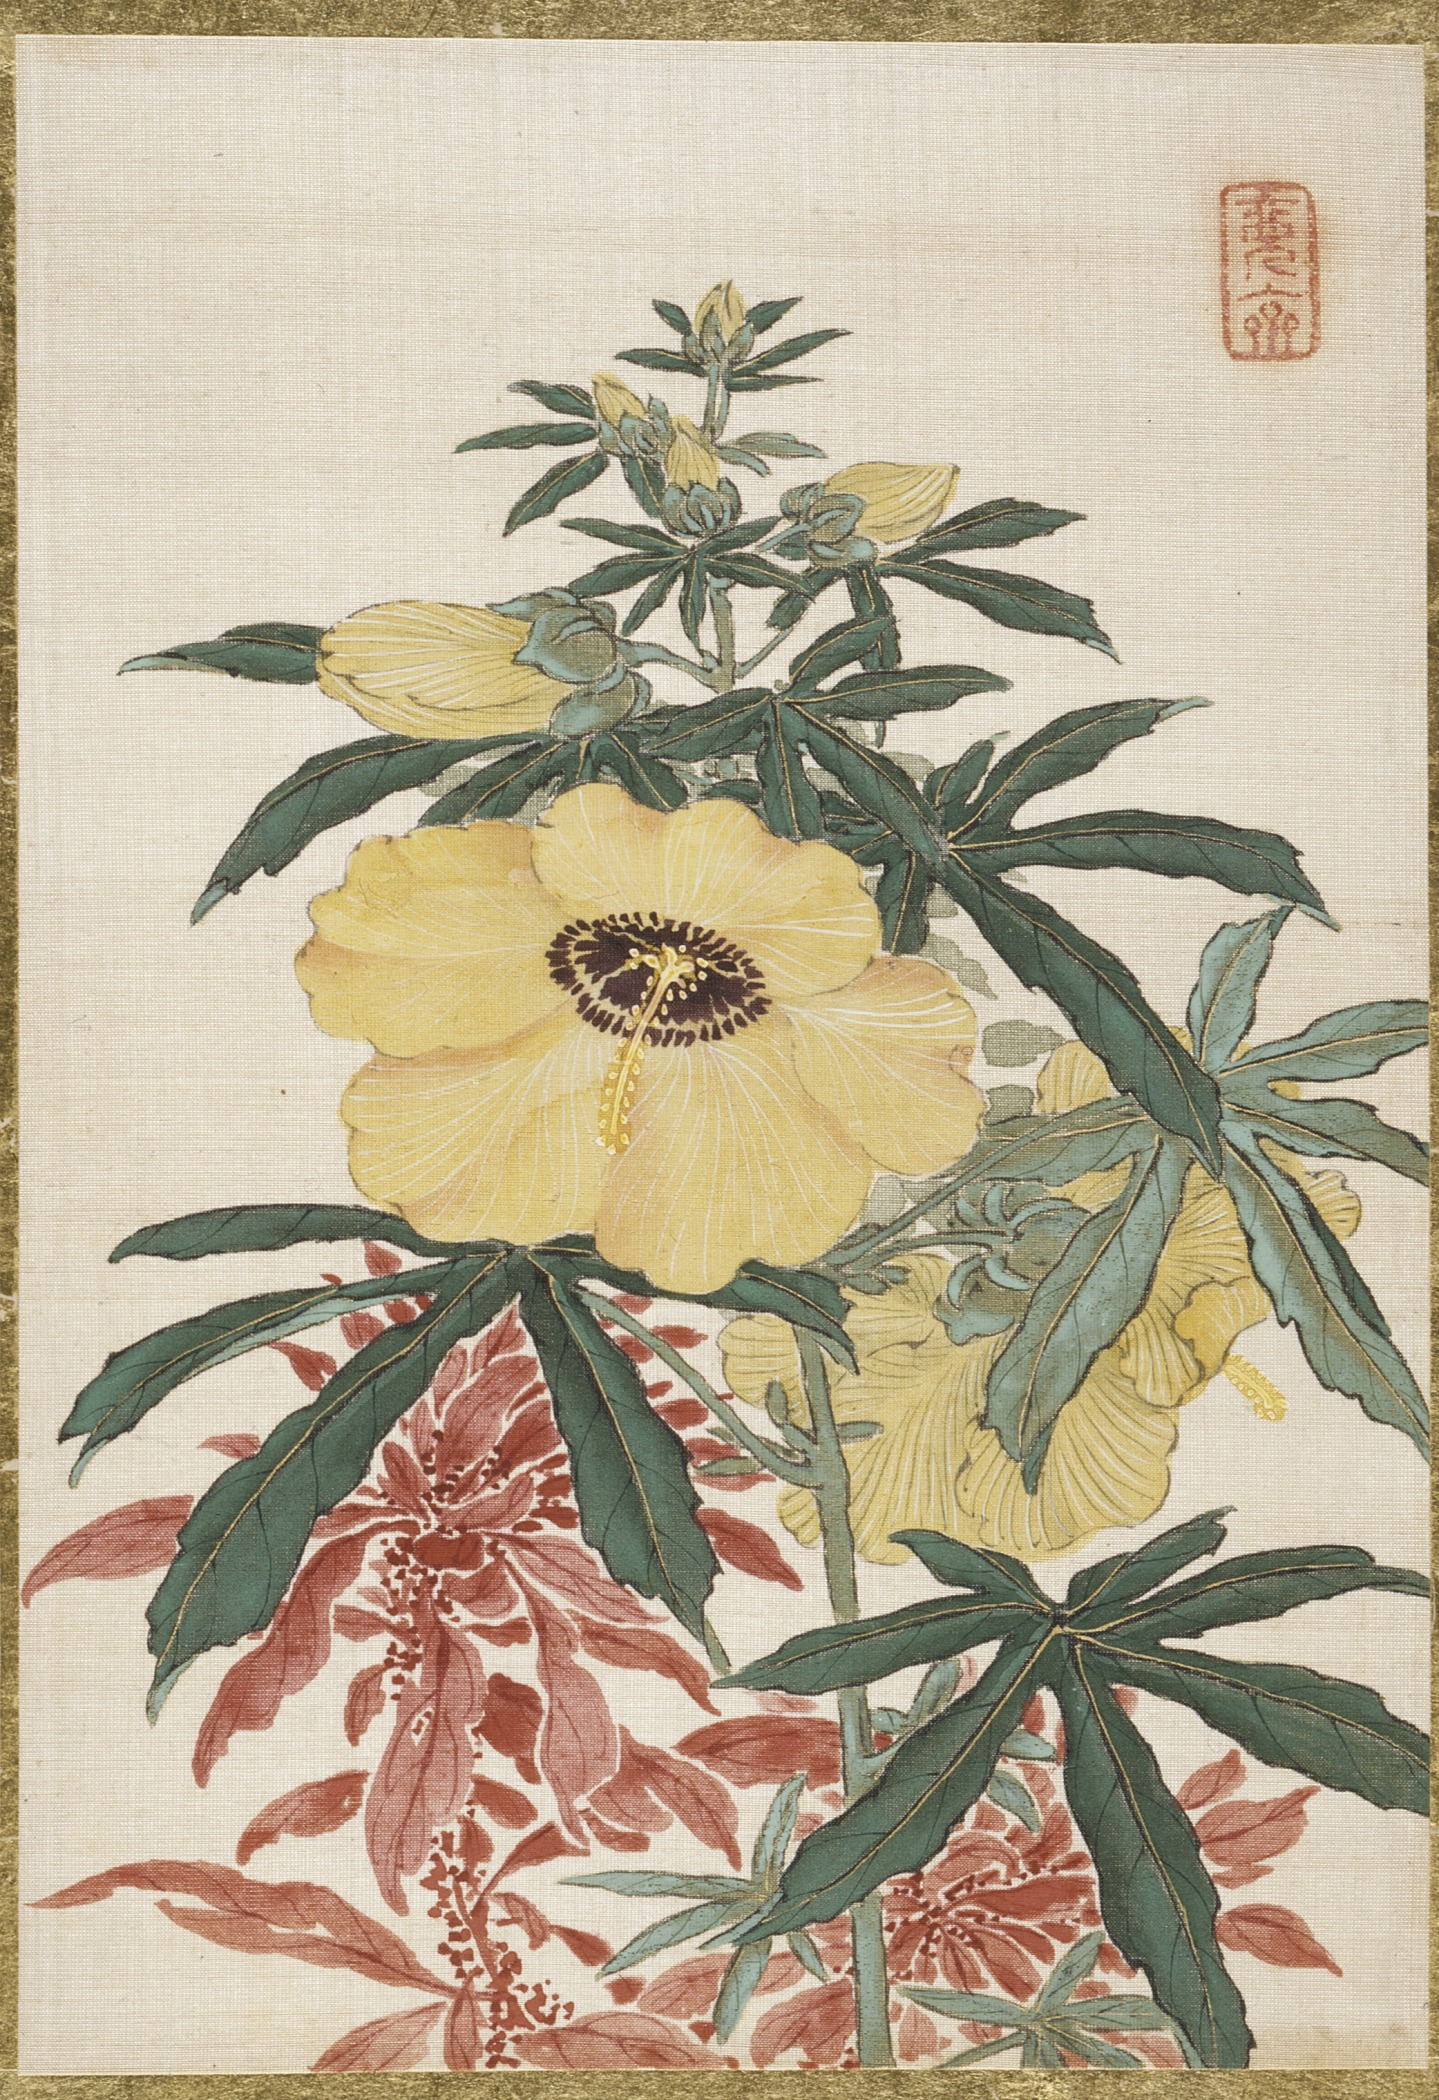 https://upload.wikimedia.org/wikipedia/commons/3/37/Pictures_of_Flowers_and_Birds_LACMA_M.85.99_%2824_of_25%29.jpg